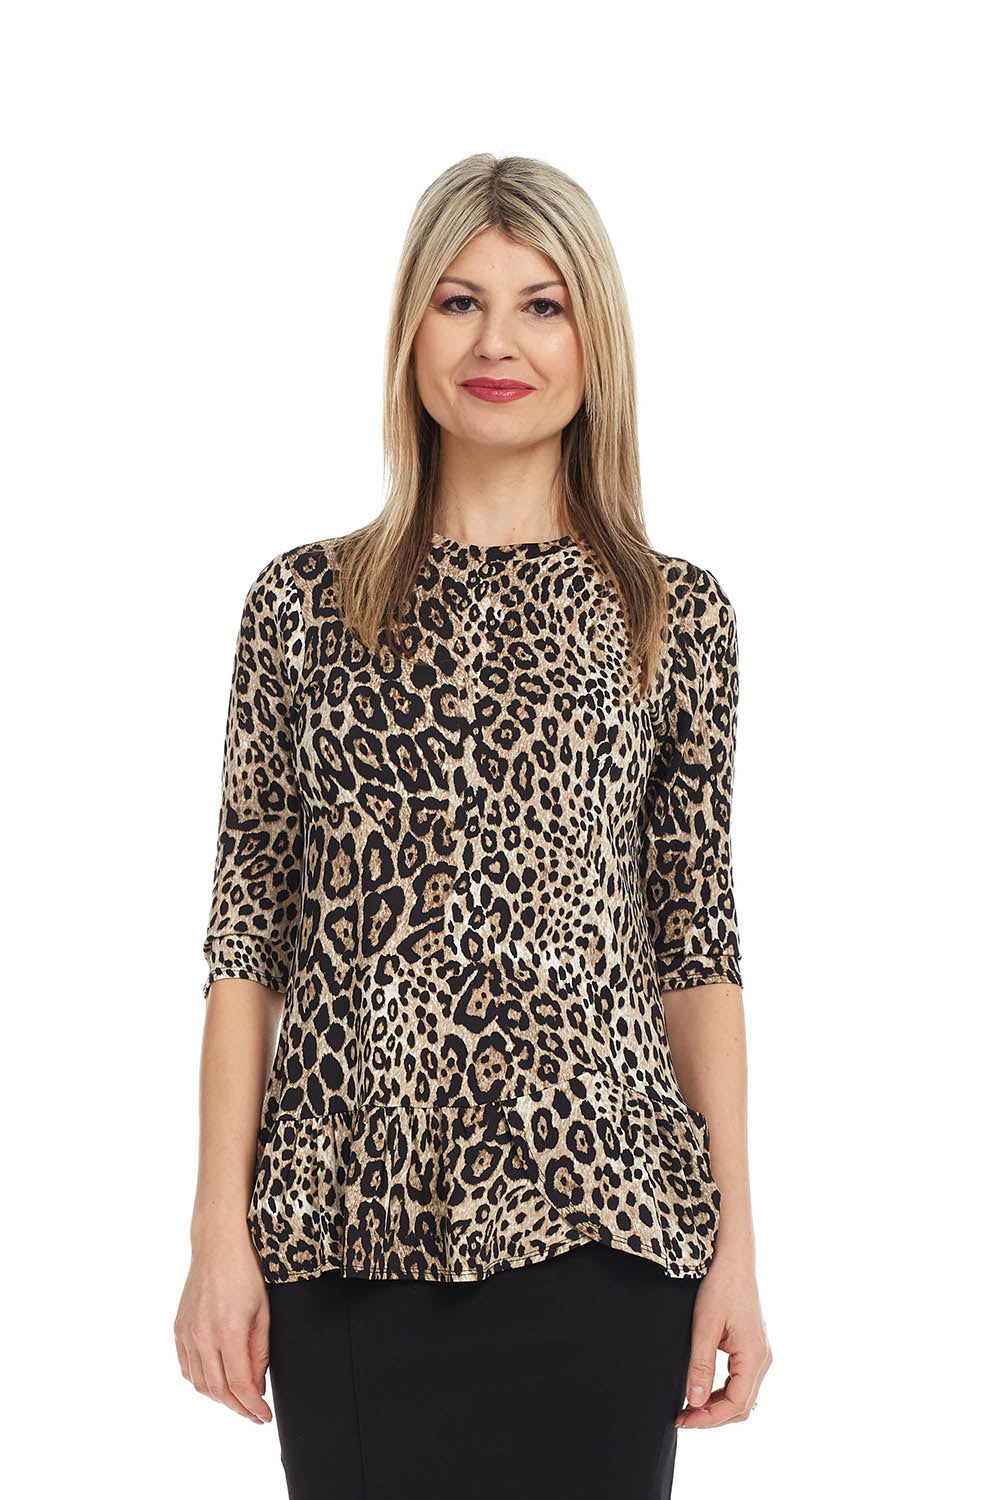 Esteez CARNATION Top - 3/4 Sleeve Tunic with Ruffle Hem - CHEETAH